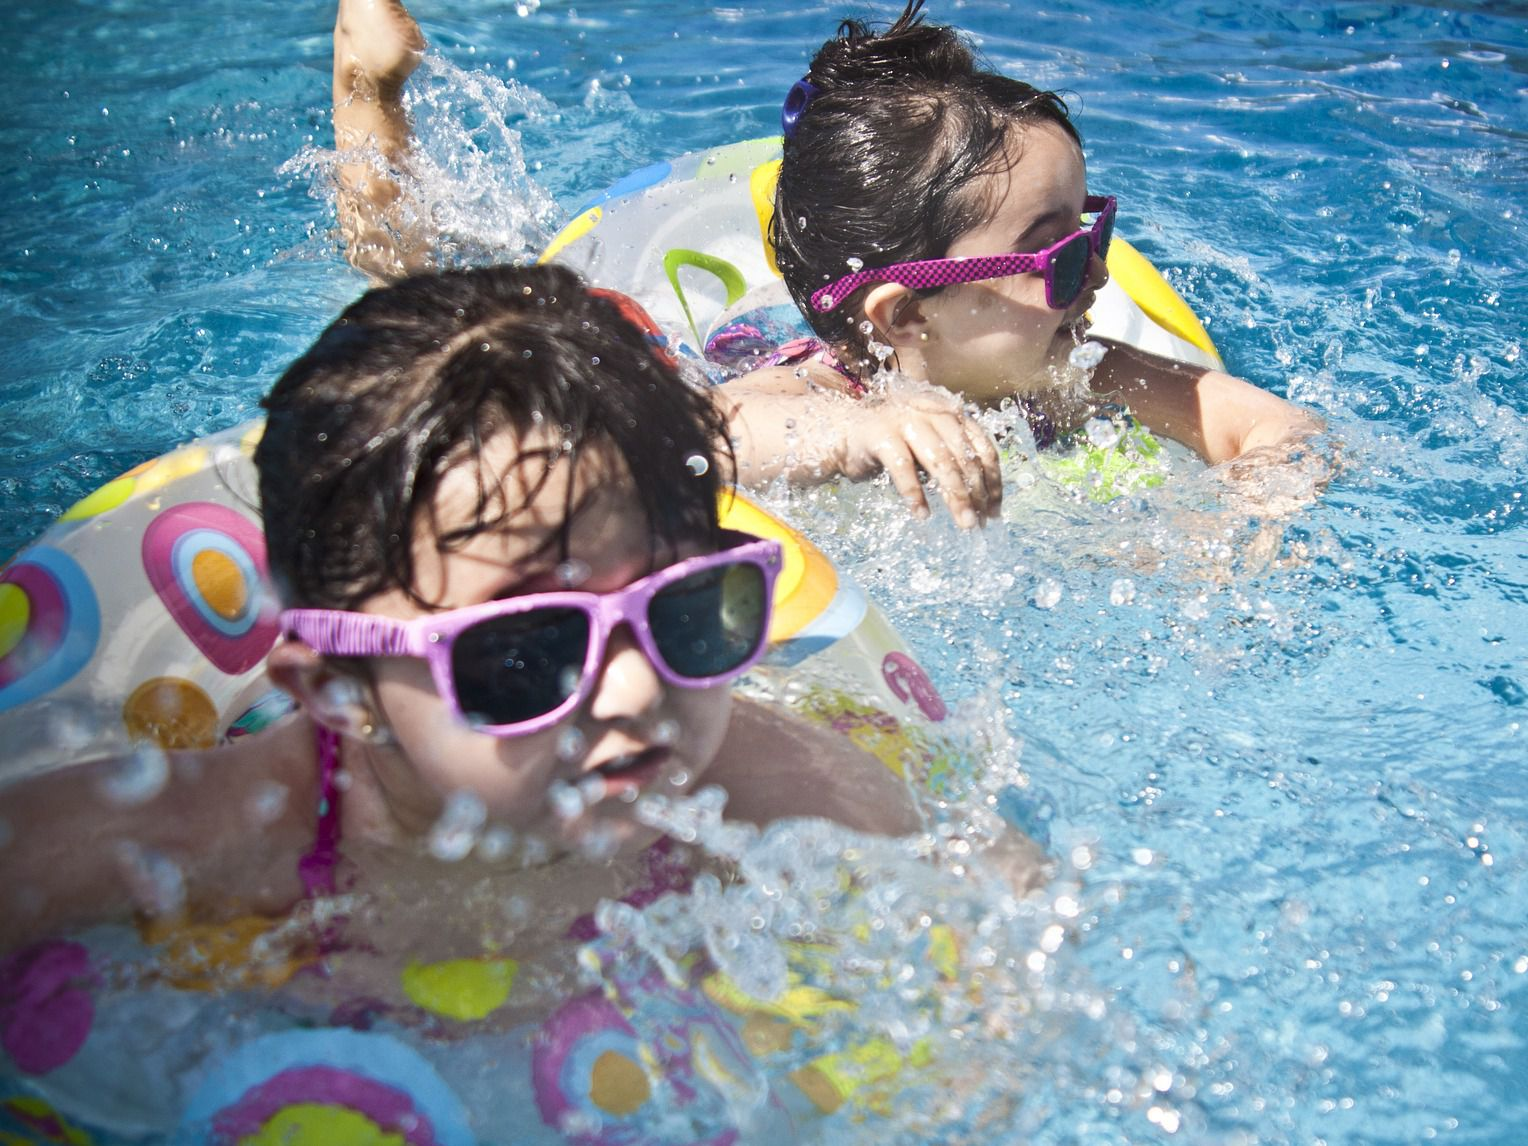 'Everyone should take a swimming lesson:' Experts offer safety reminders ahead of pools opening